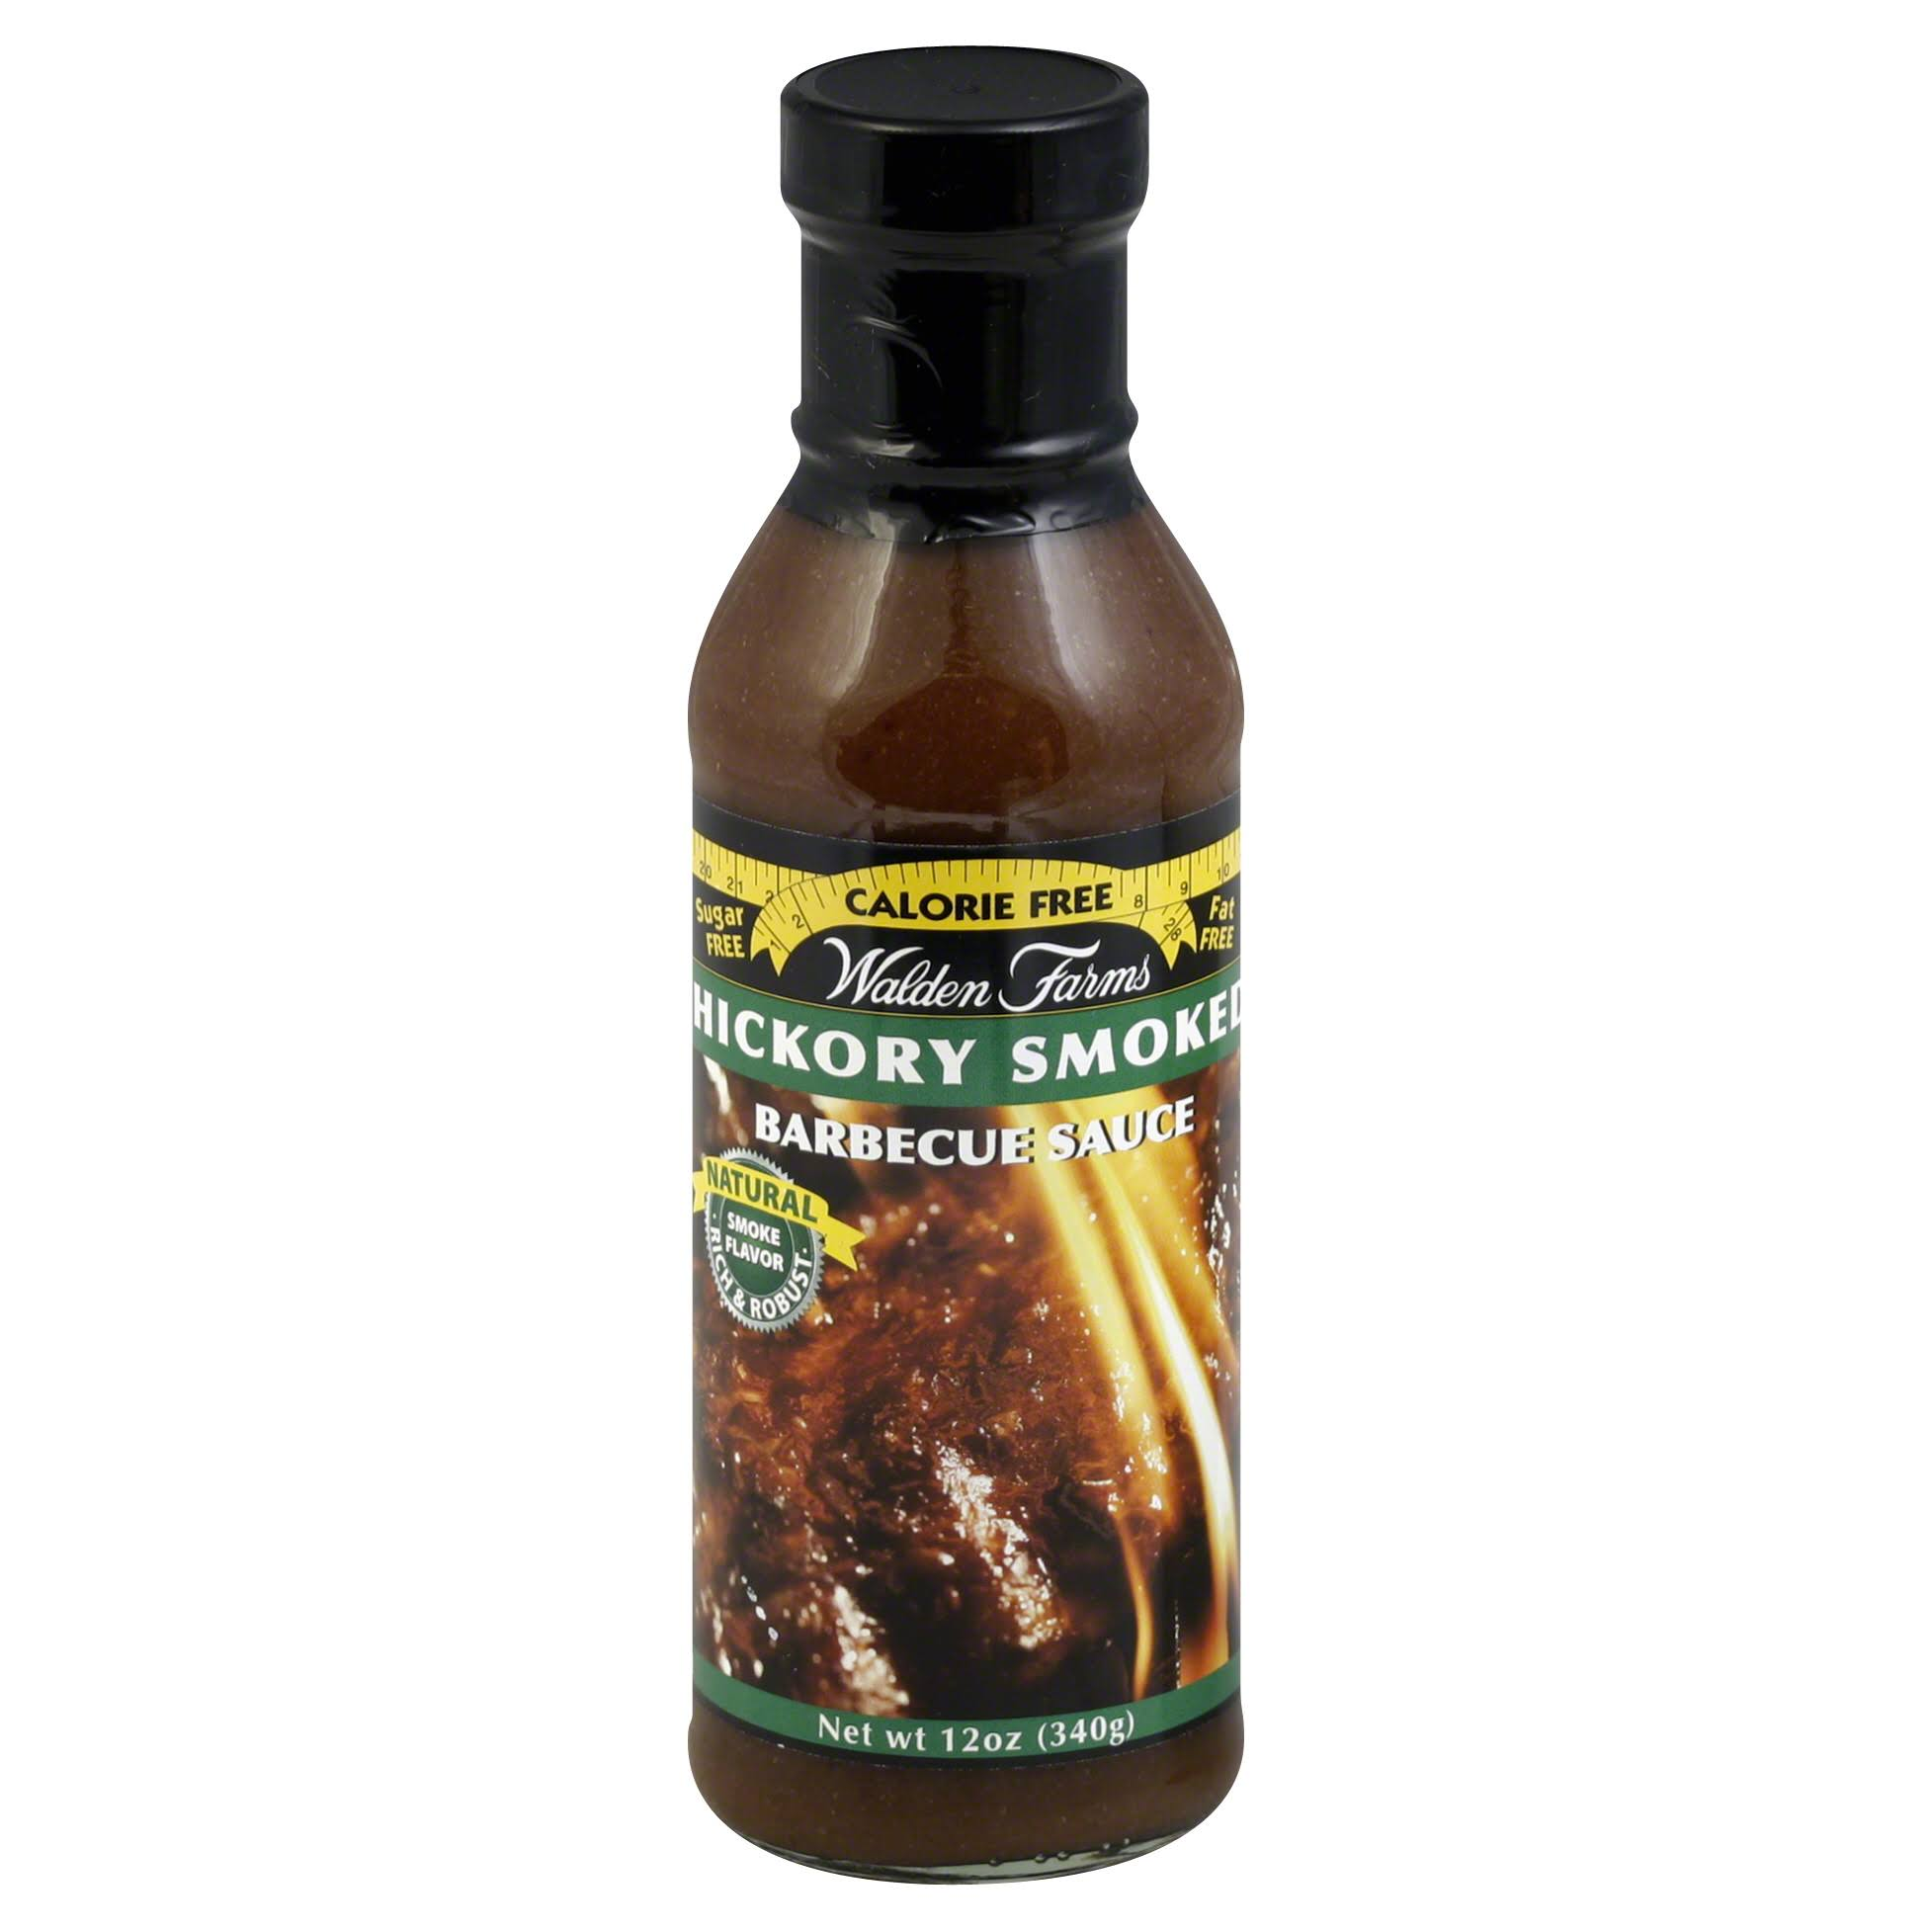 Walden Farms Near Zero Barbecue Sauce - 340g, Hickory Smoked